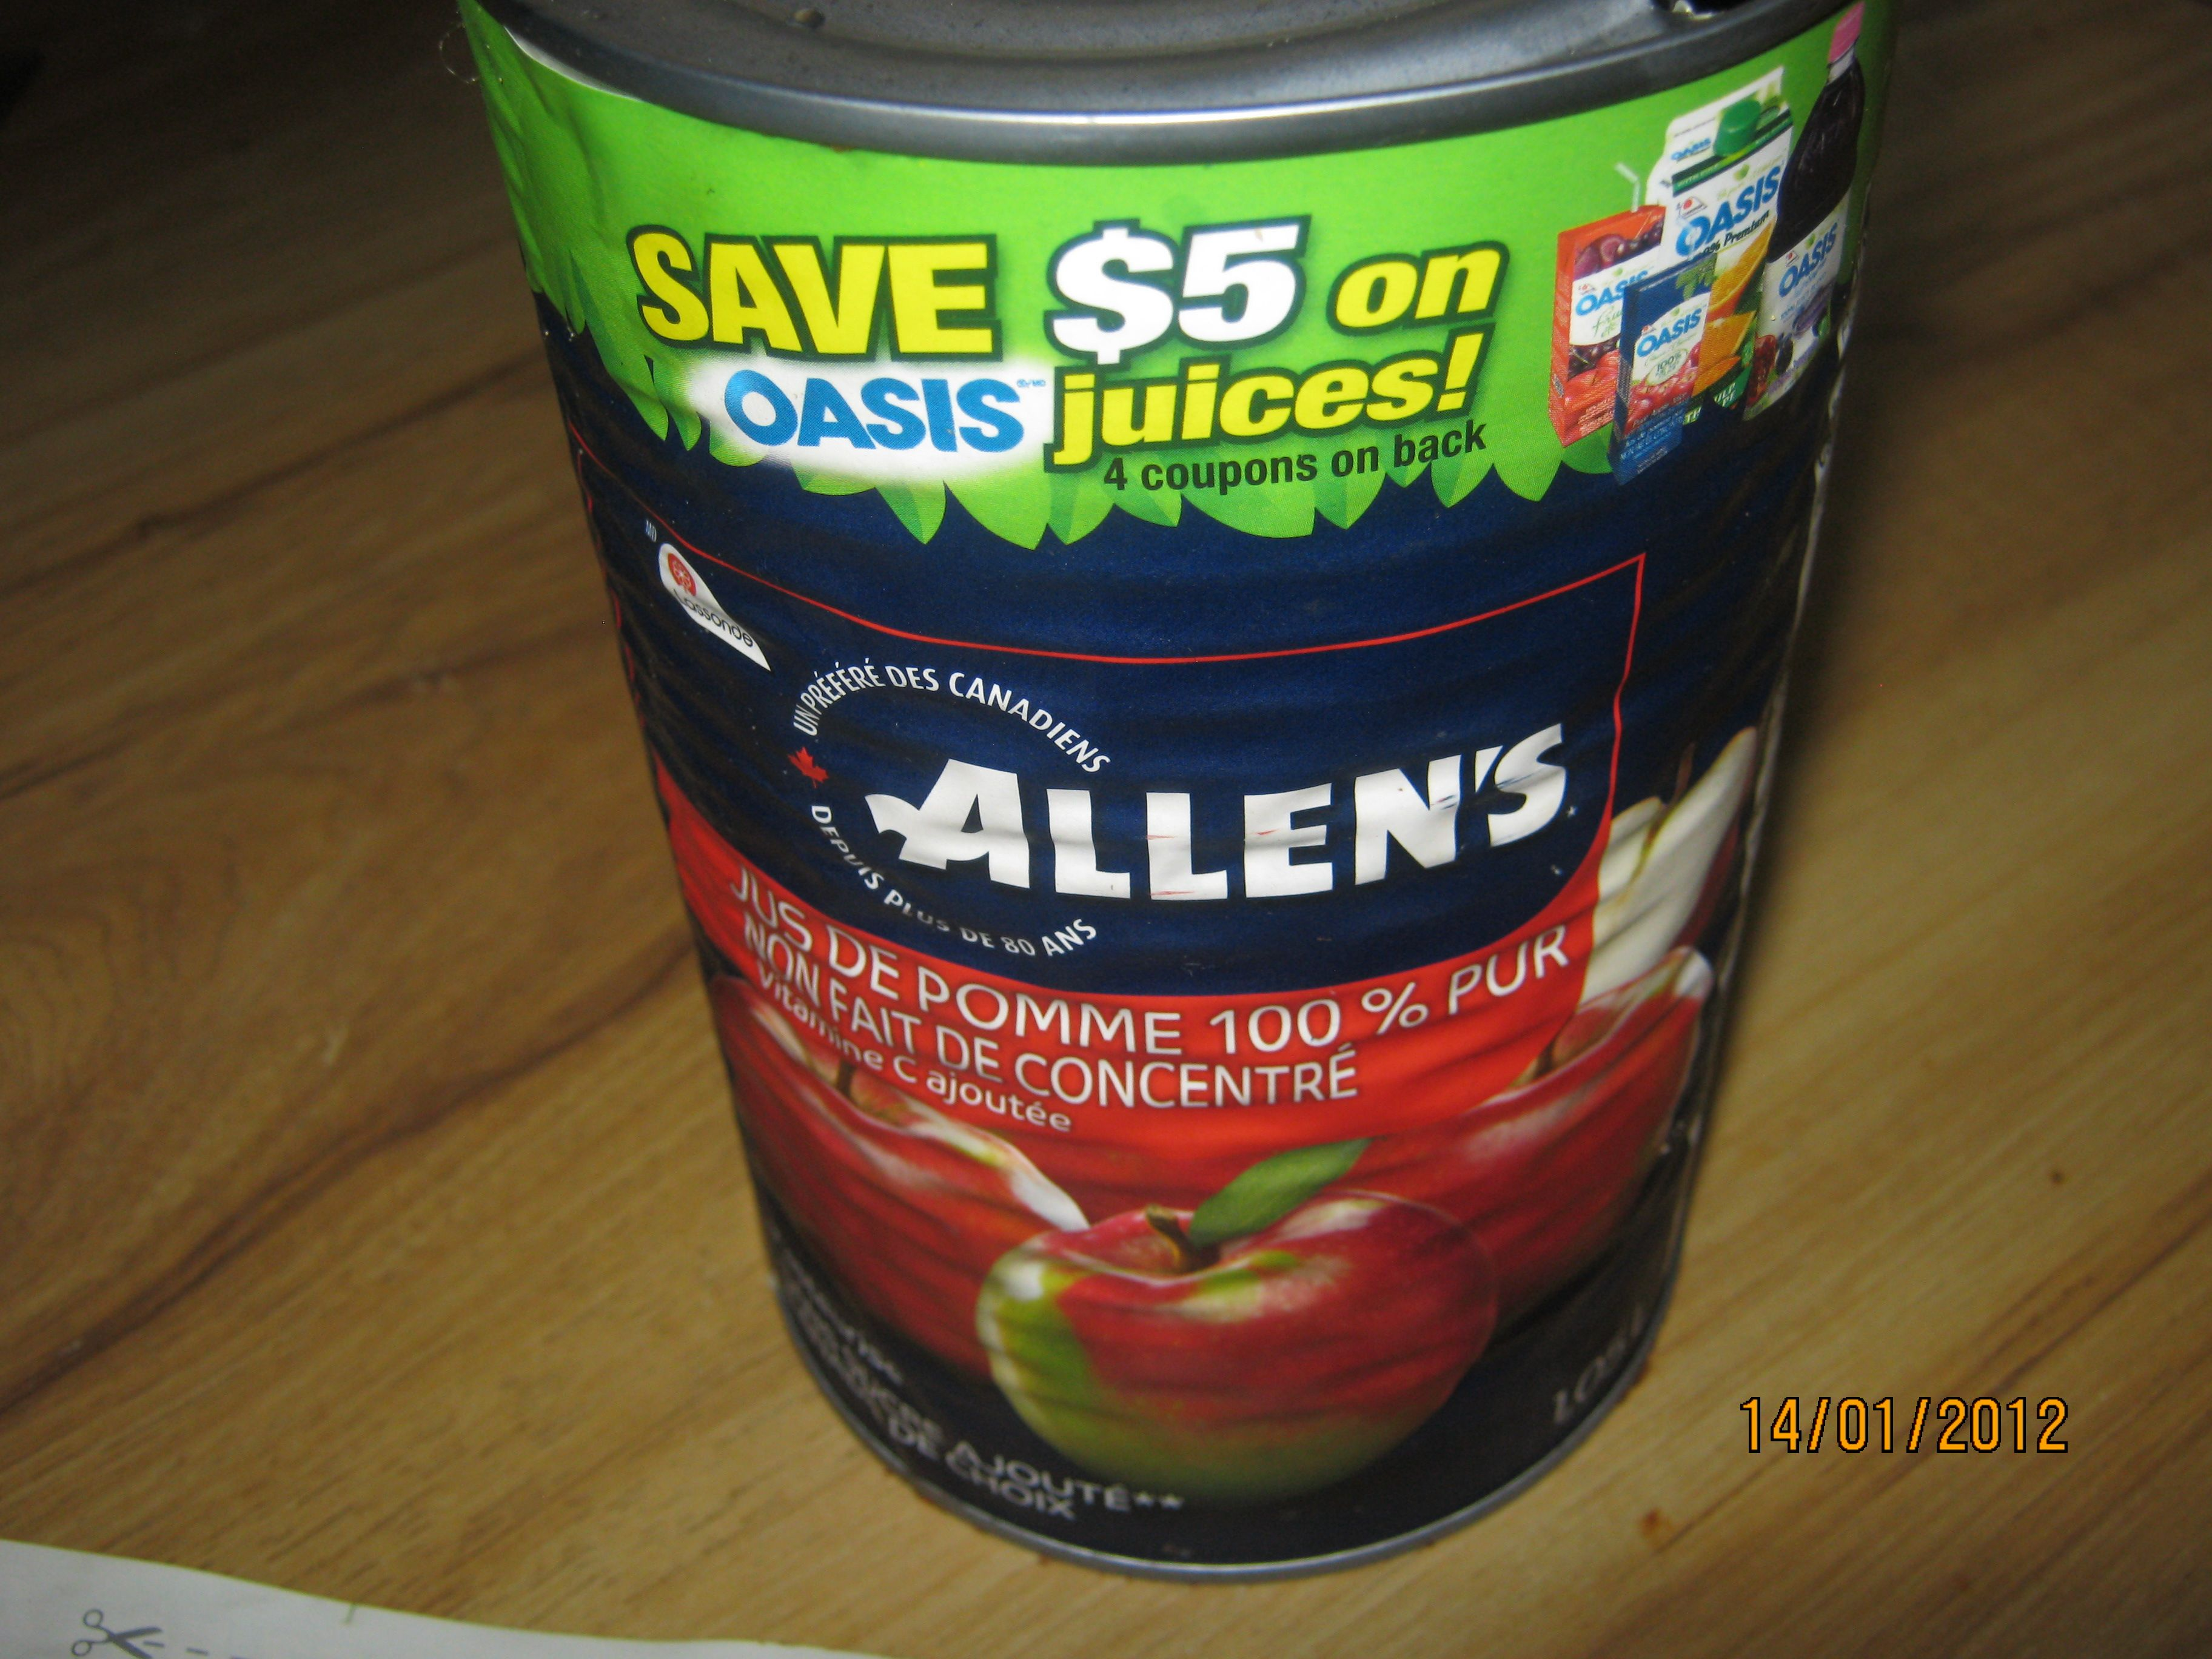 Allens apple juice coupons found for oasis products